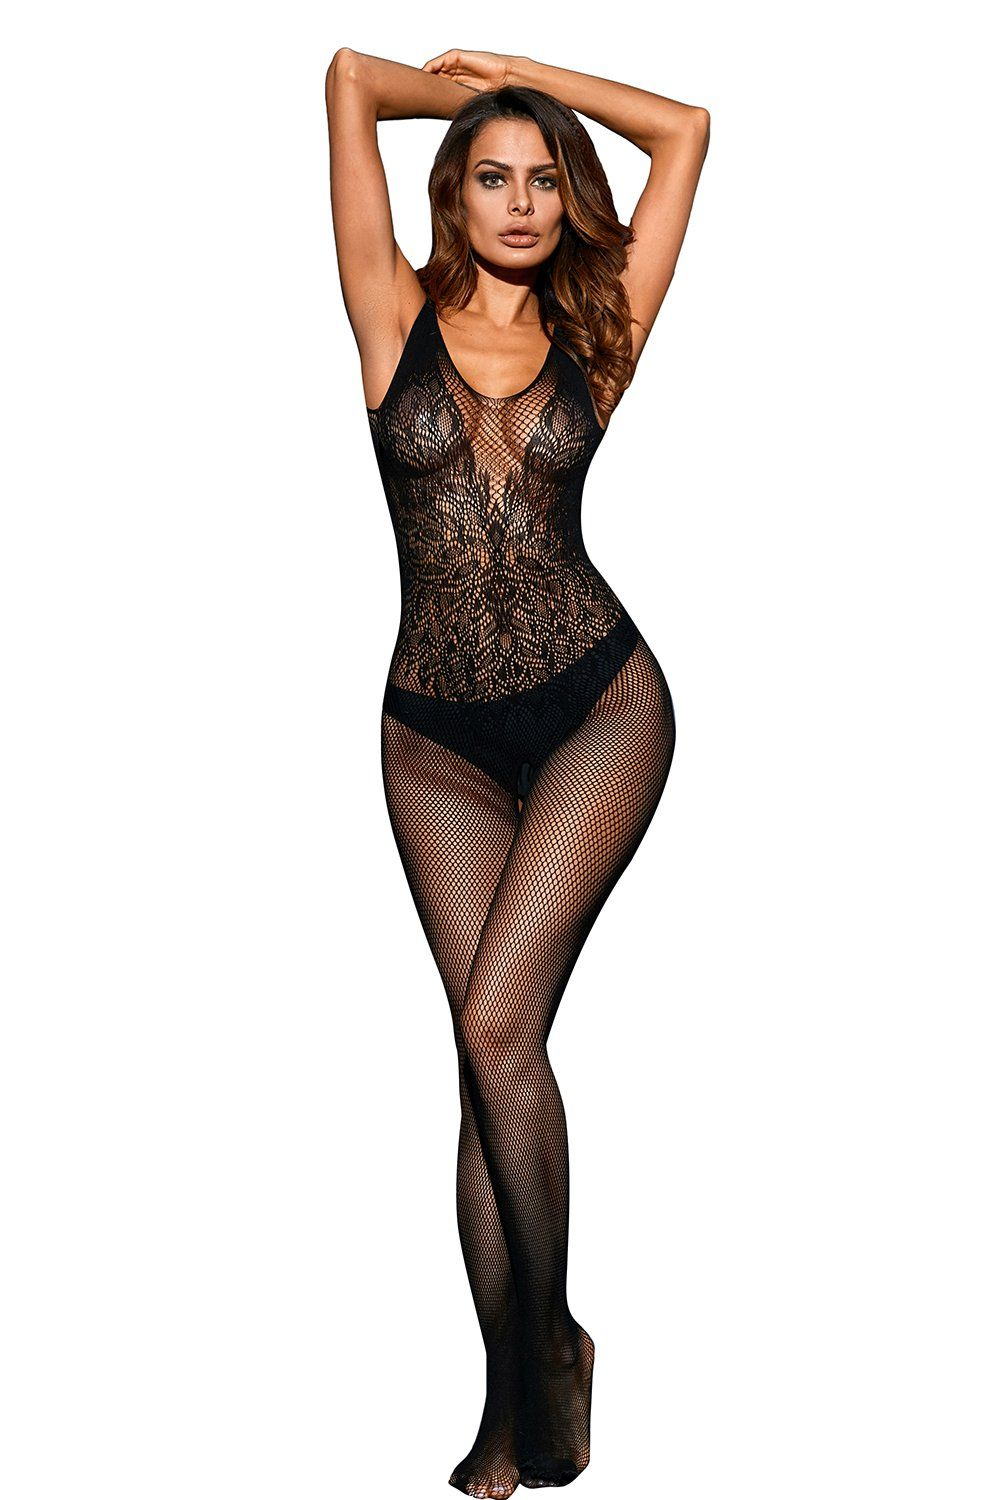 a6e54dded373 Black Leavy Lace Seamless Mesh Body Stocking